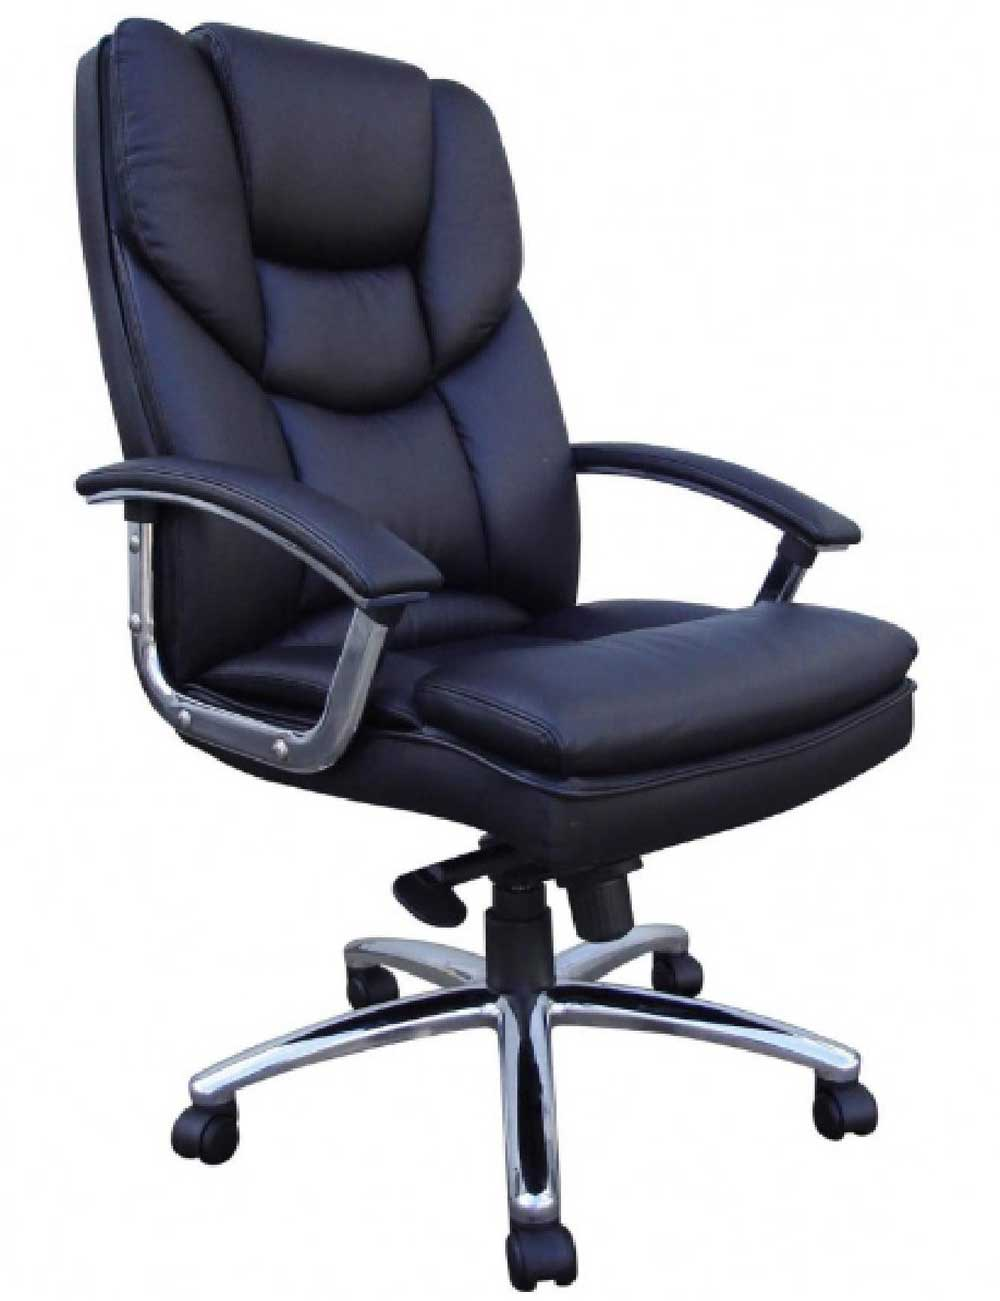 Skyline Leather luxury office chairs with heels